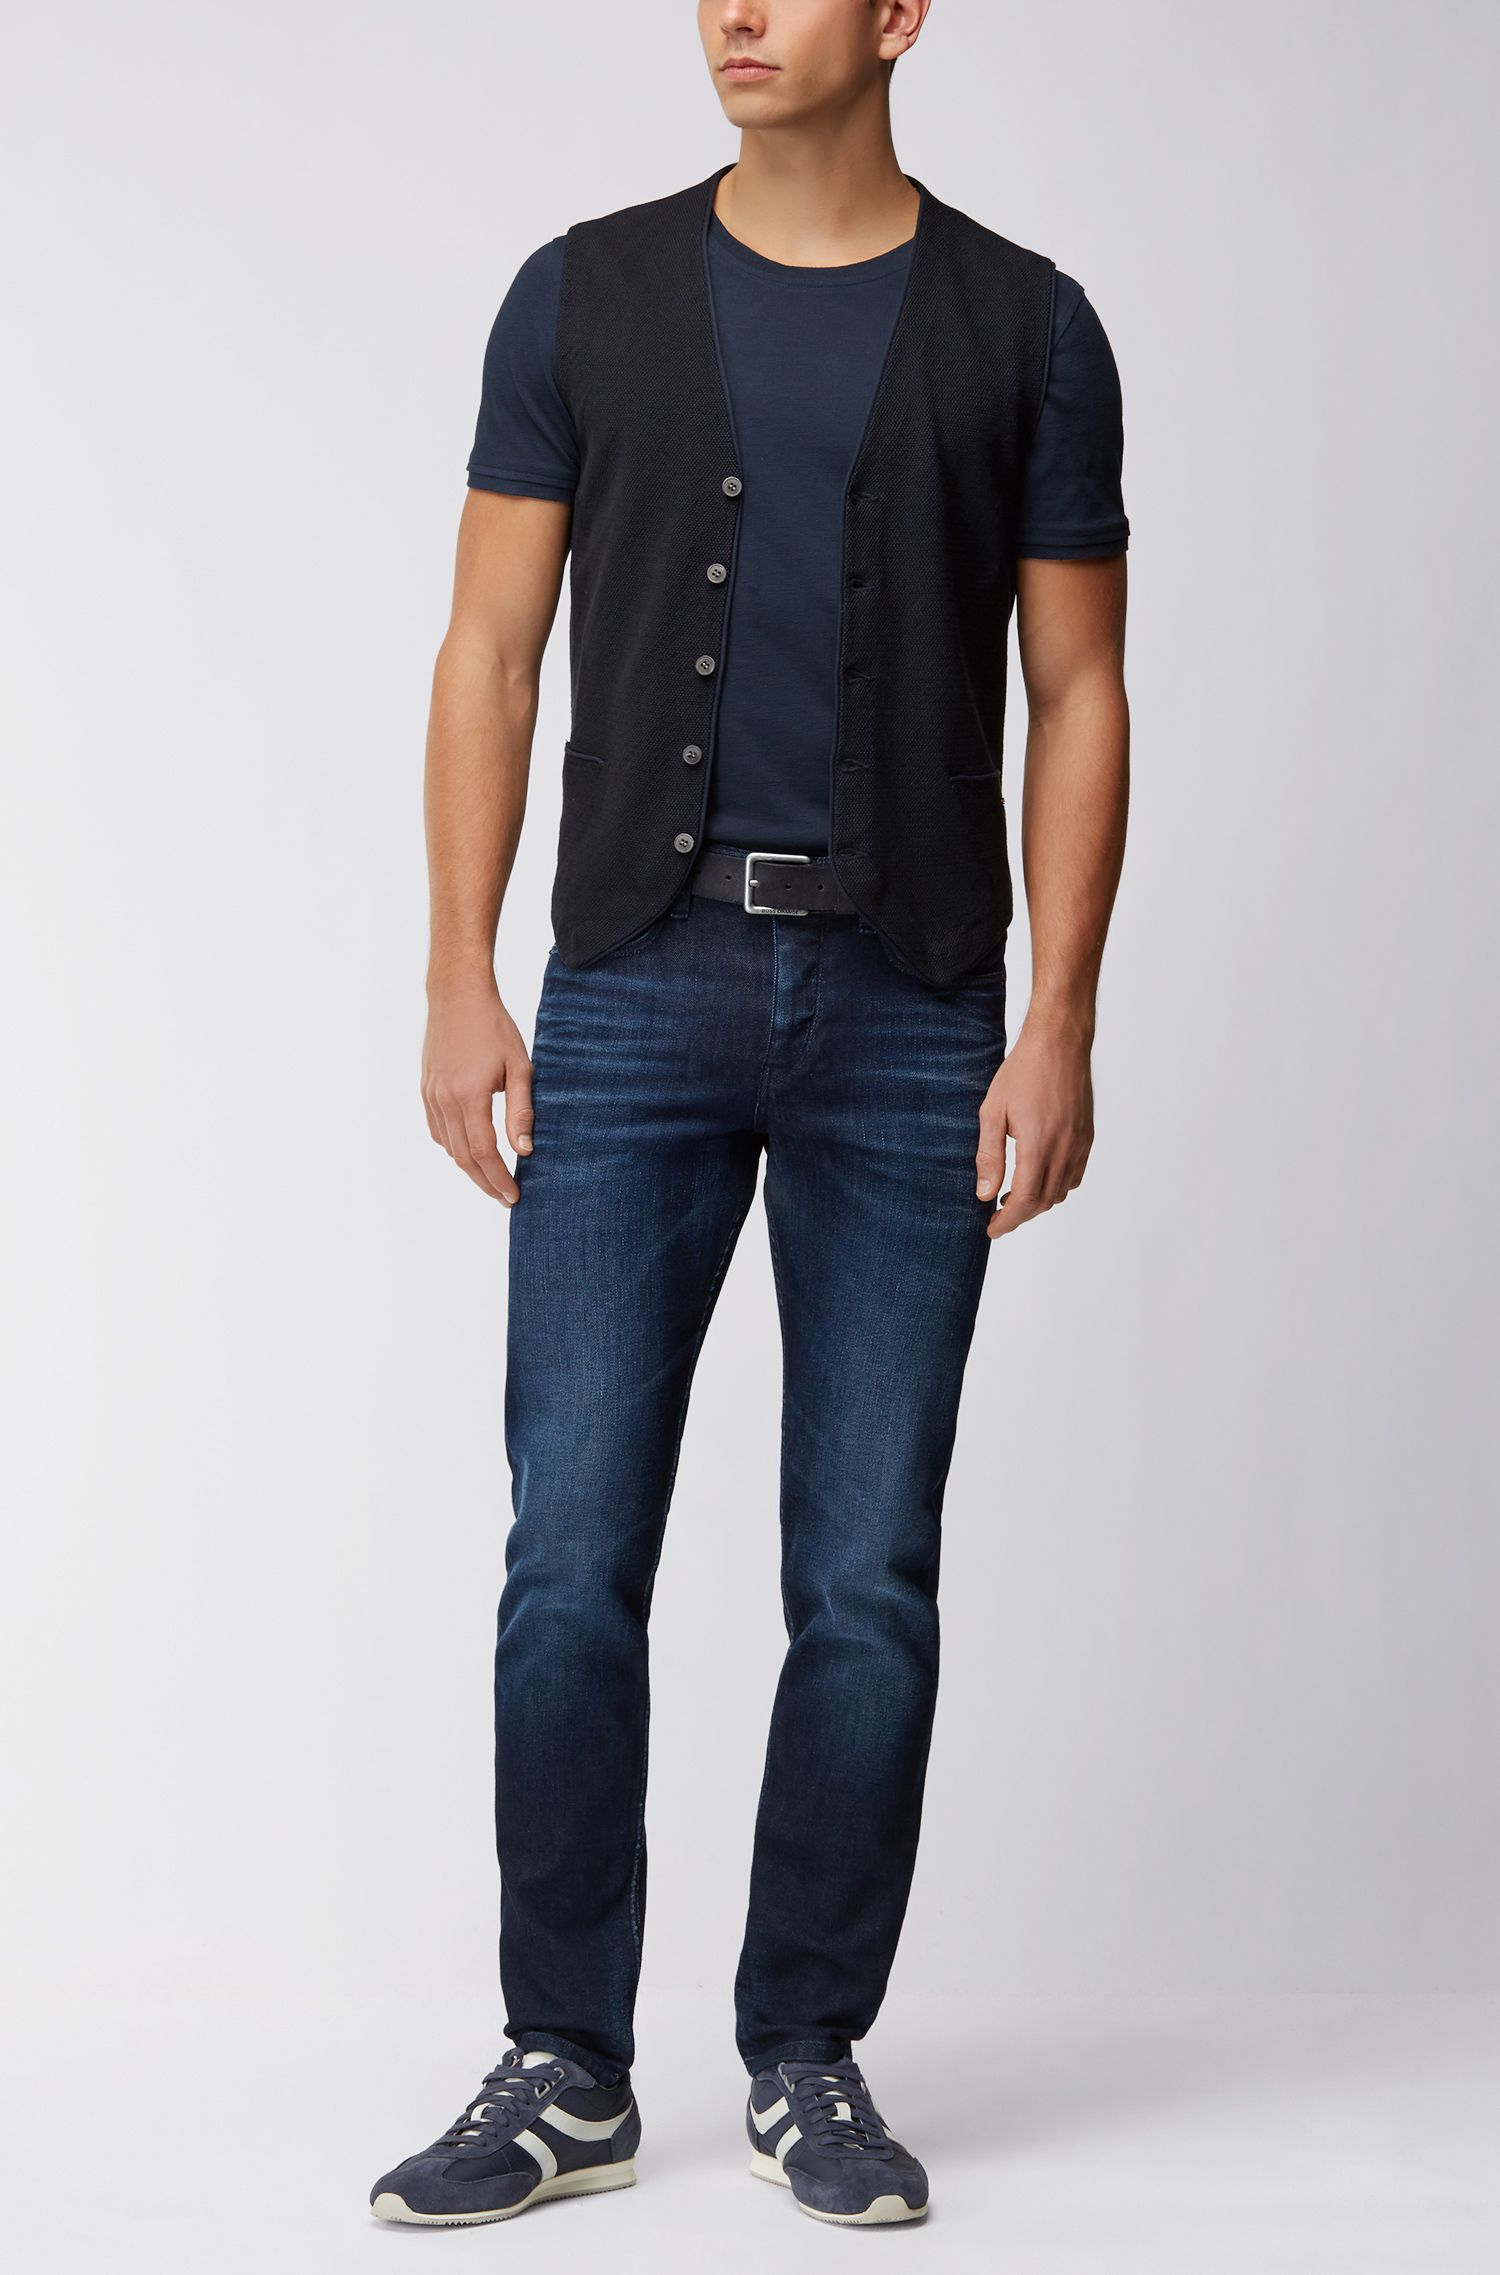 Lightweight knitted button-up waistcoat in cotton blended with silk